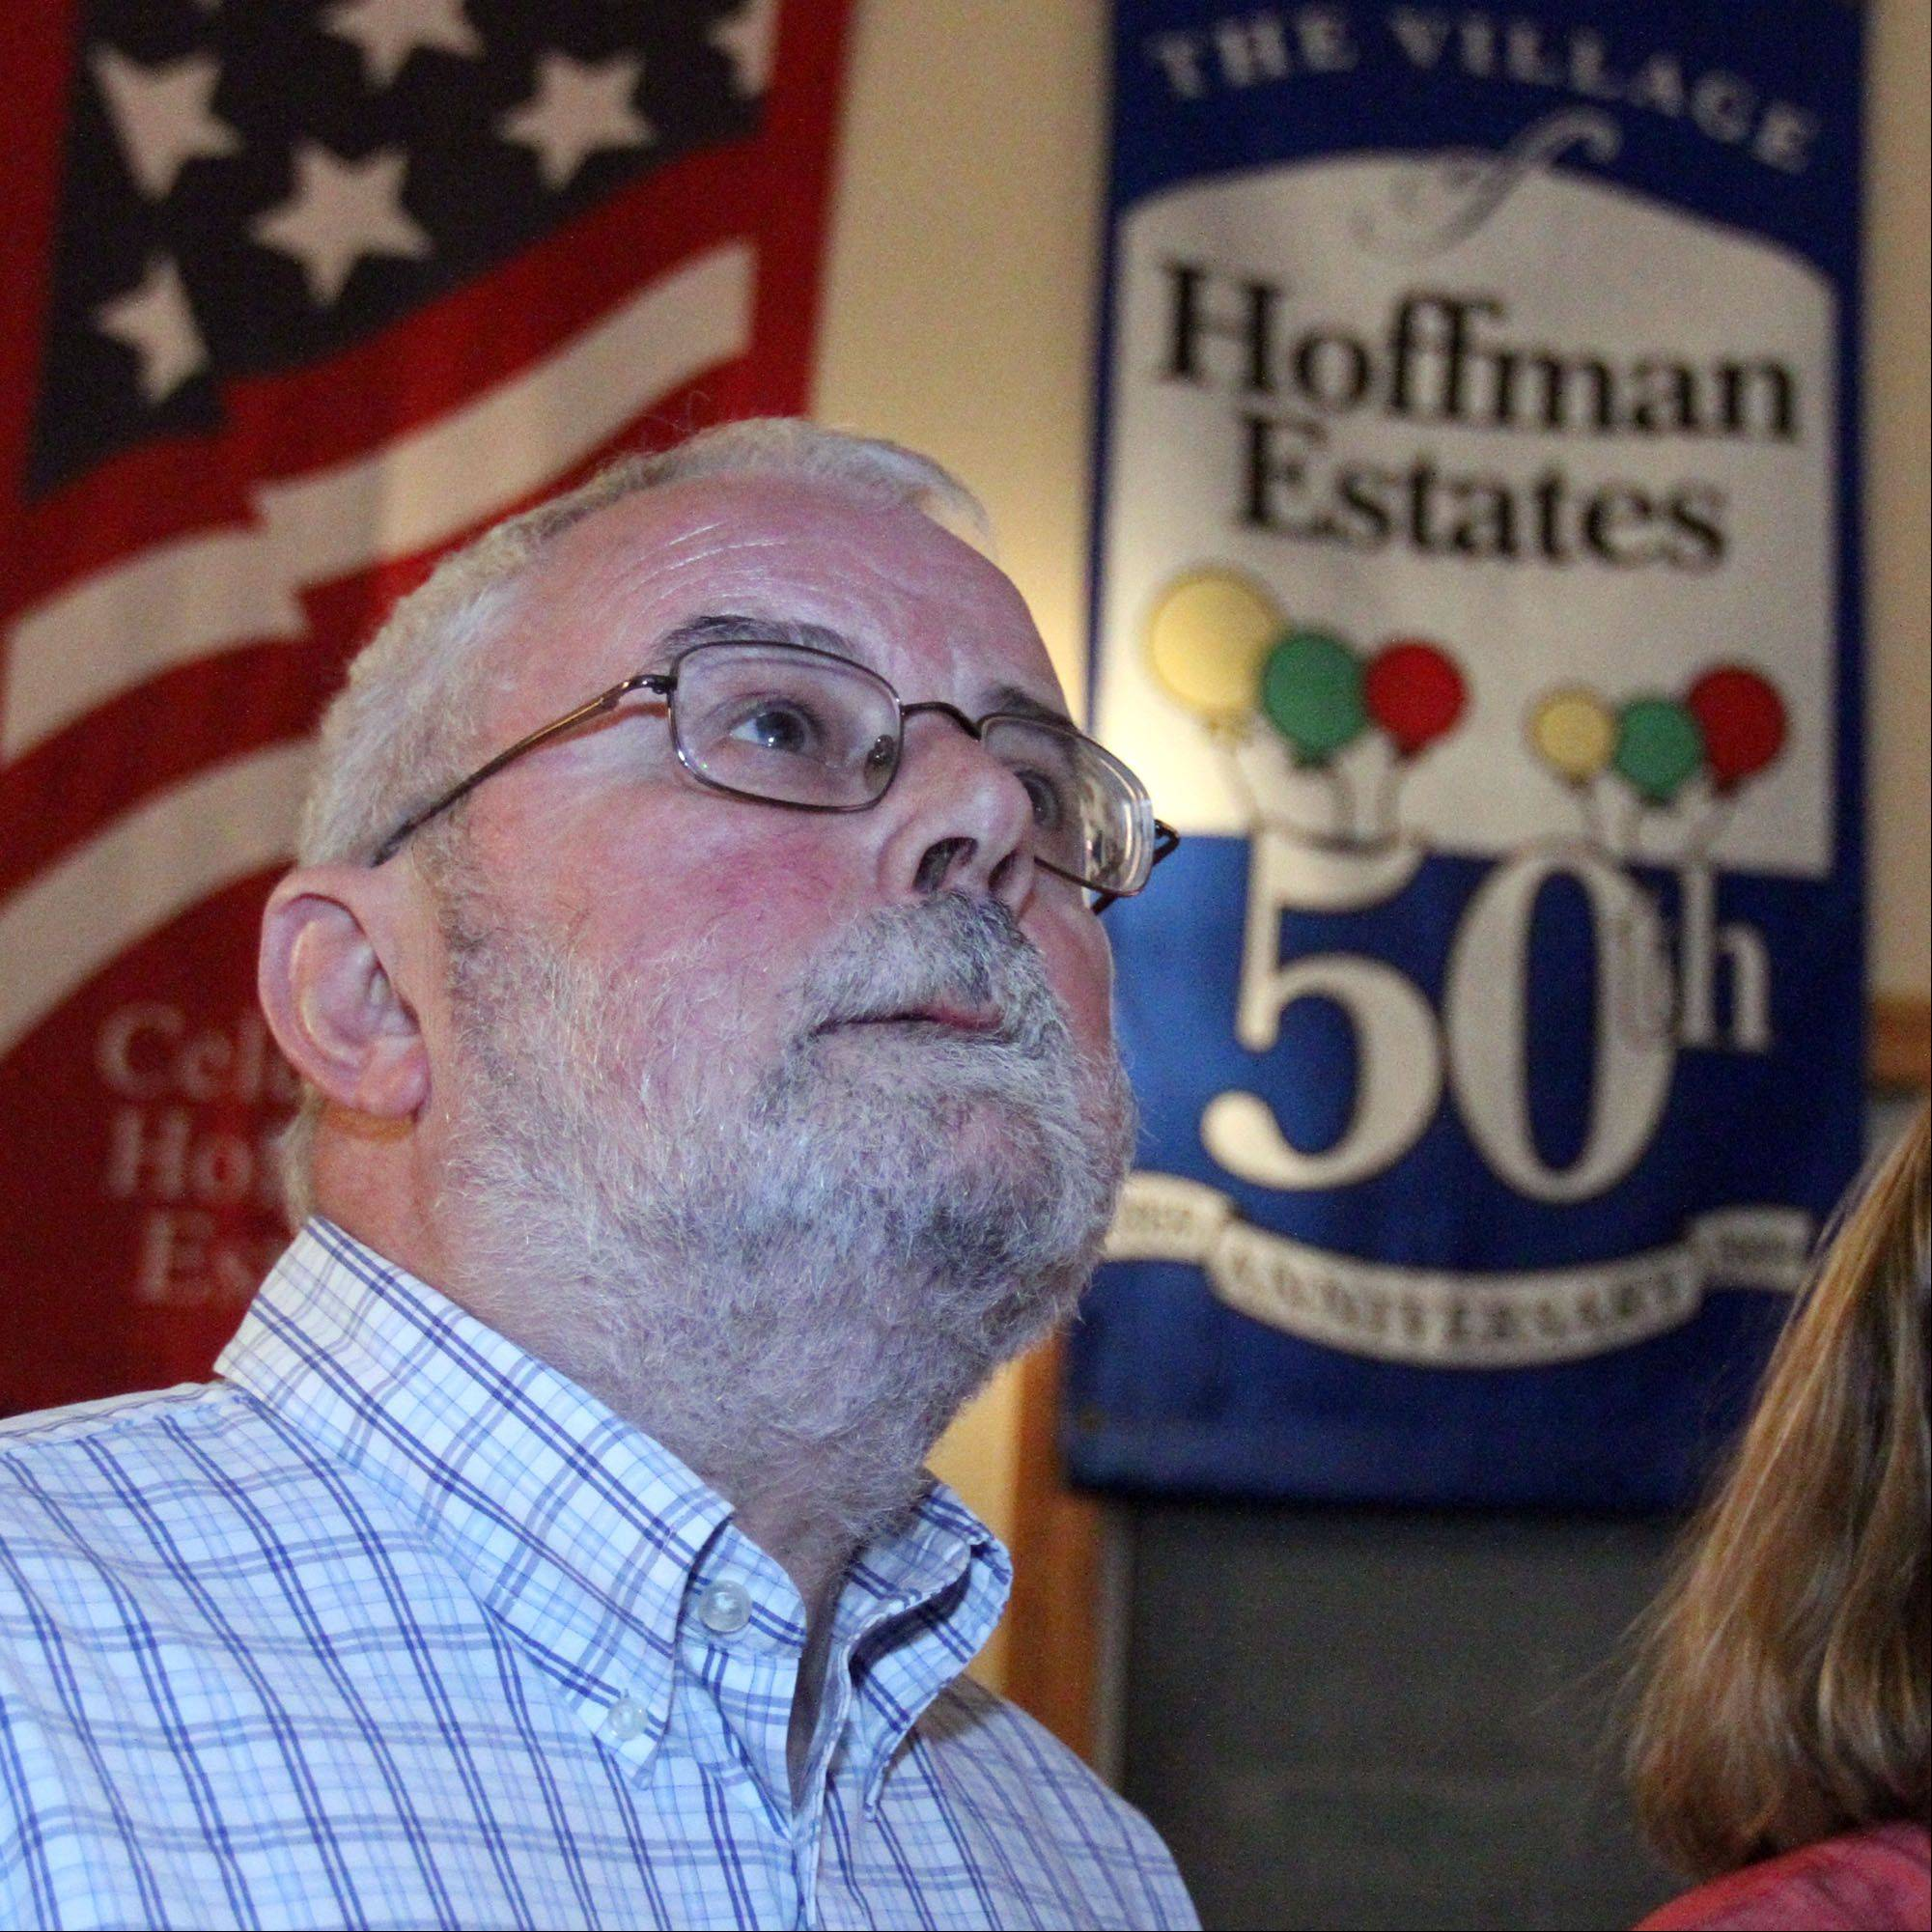 From his home, Hoffman Estates Mayor William McLeod watches election results showing him leading over challenger Ray Kincaid.